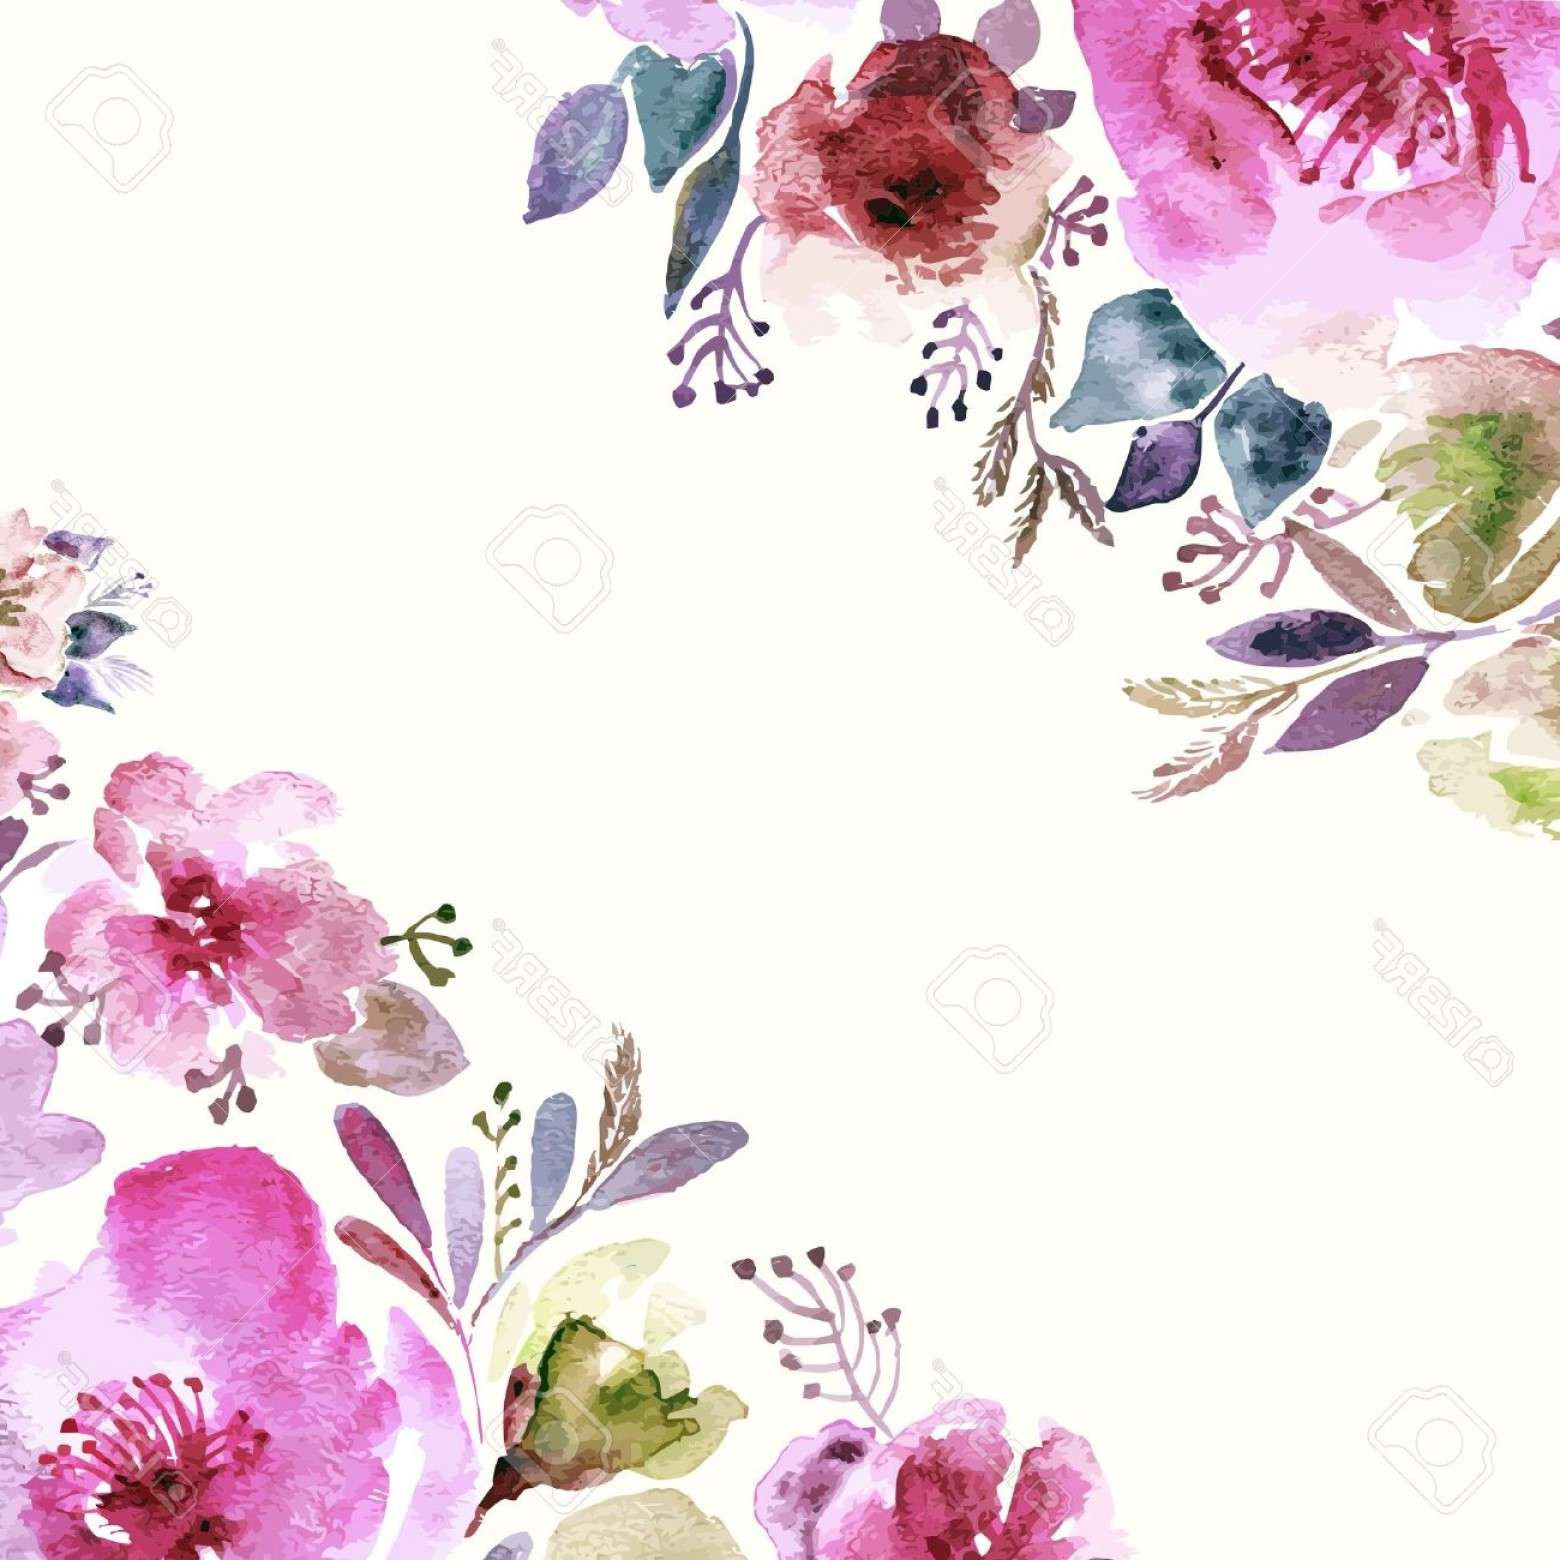 Watercolor Floral Background Vector: Photostock Vector Floral Background Watercolor Floral Bouquet Birthday Card Floral Decorative Frame